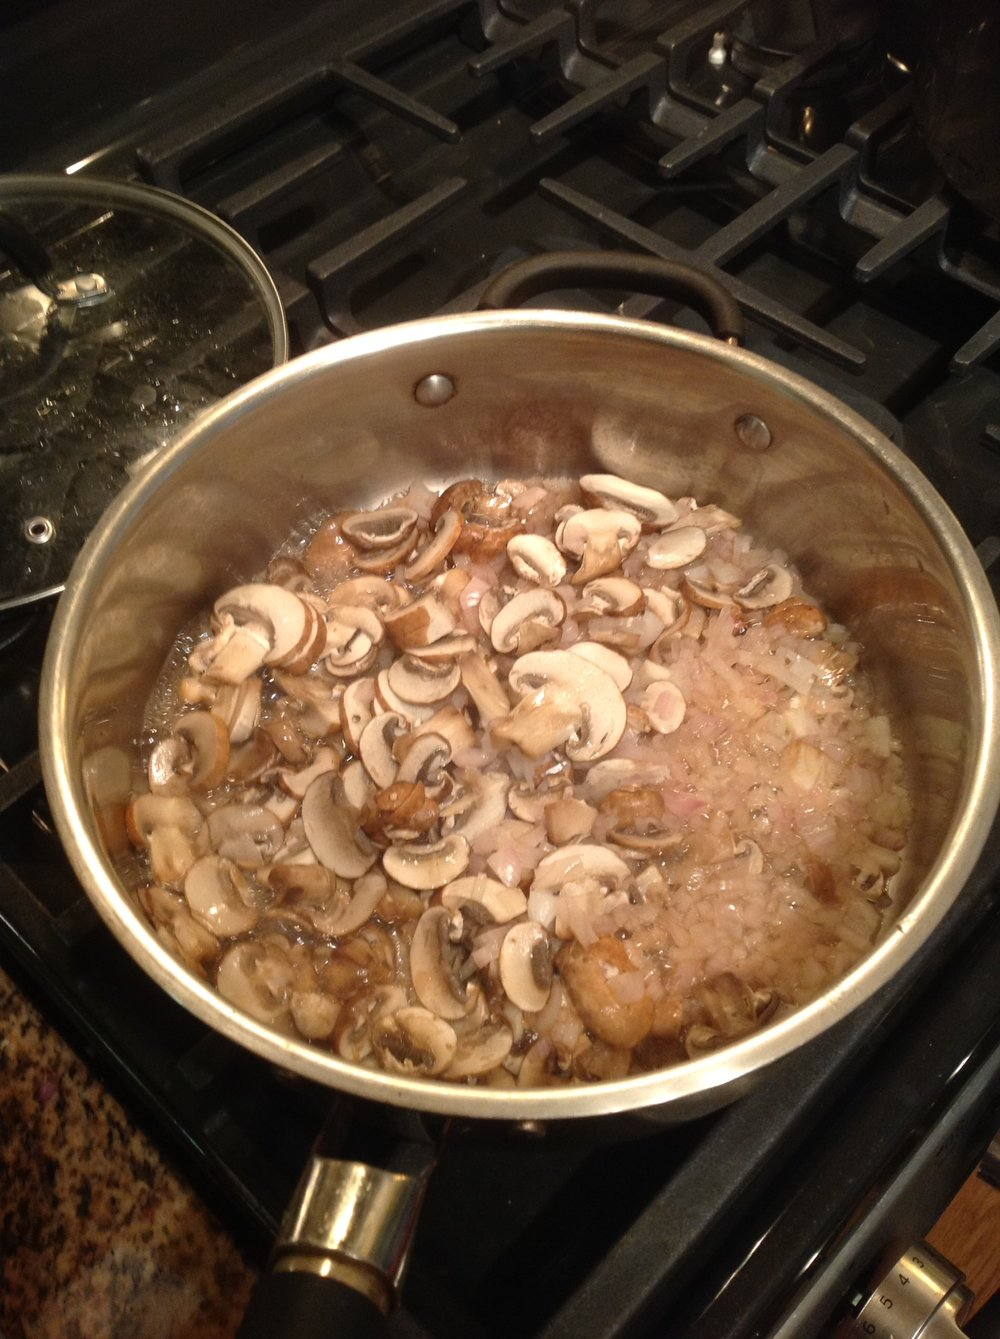 Chef's Tip:  Saute the mushrooms and onions until golden brown.  There's no need to use oil as the natural moisture from the vegetables will release while they cook for this healthy, plant-based recipe